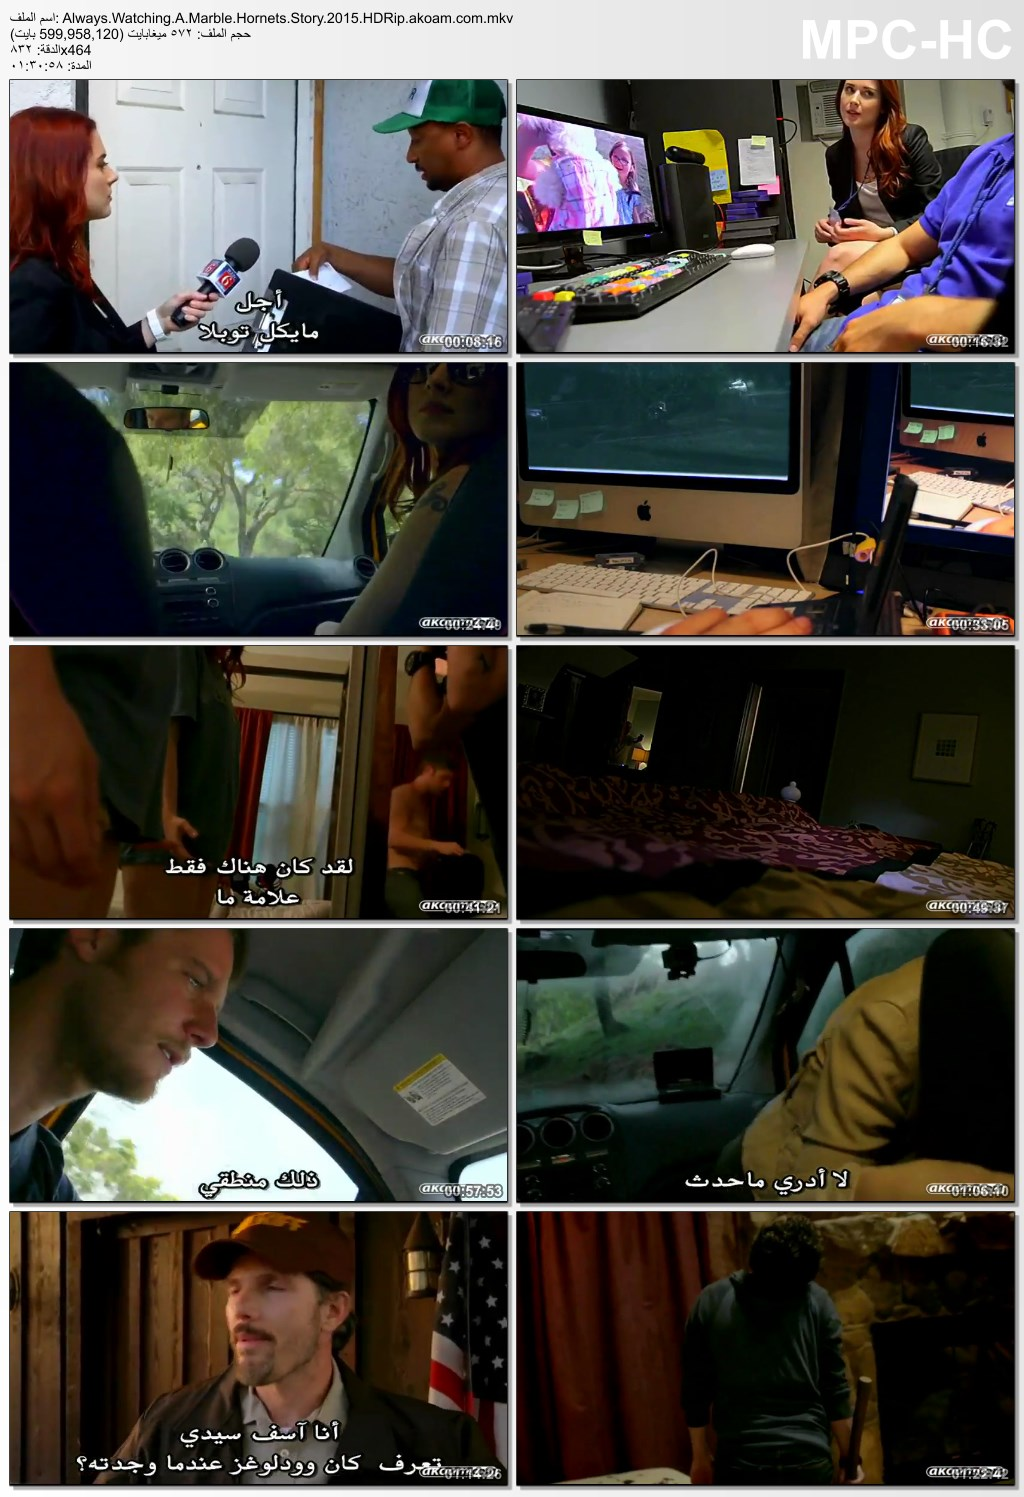 Always Watching A Marble Hornets Story 2015,Always,Watching,Marble,Hornets,Story,Always Watching A Marble Hornets Story,Alexandra Breckenridge,الرعب,المثير,رعب,الكسندرا بريكنريدج,Doug Jones